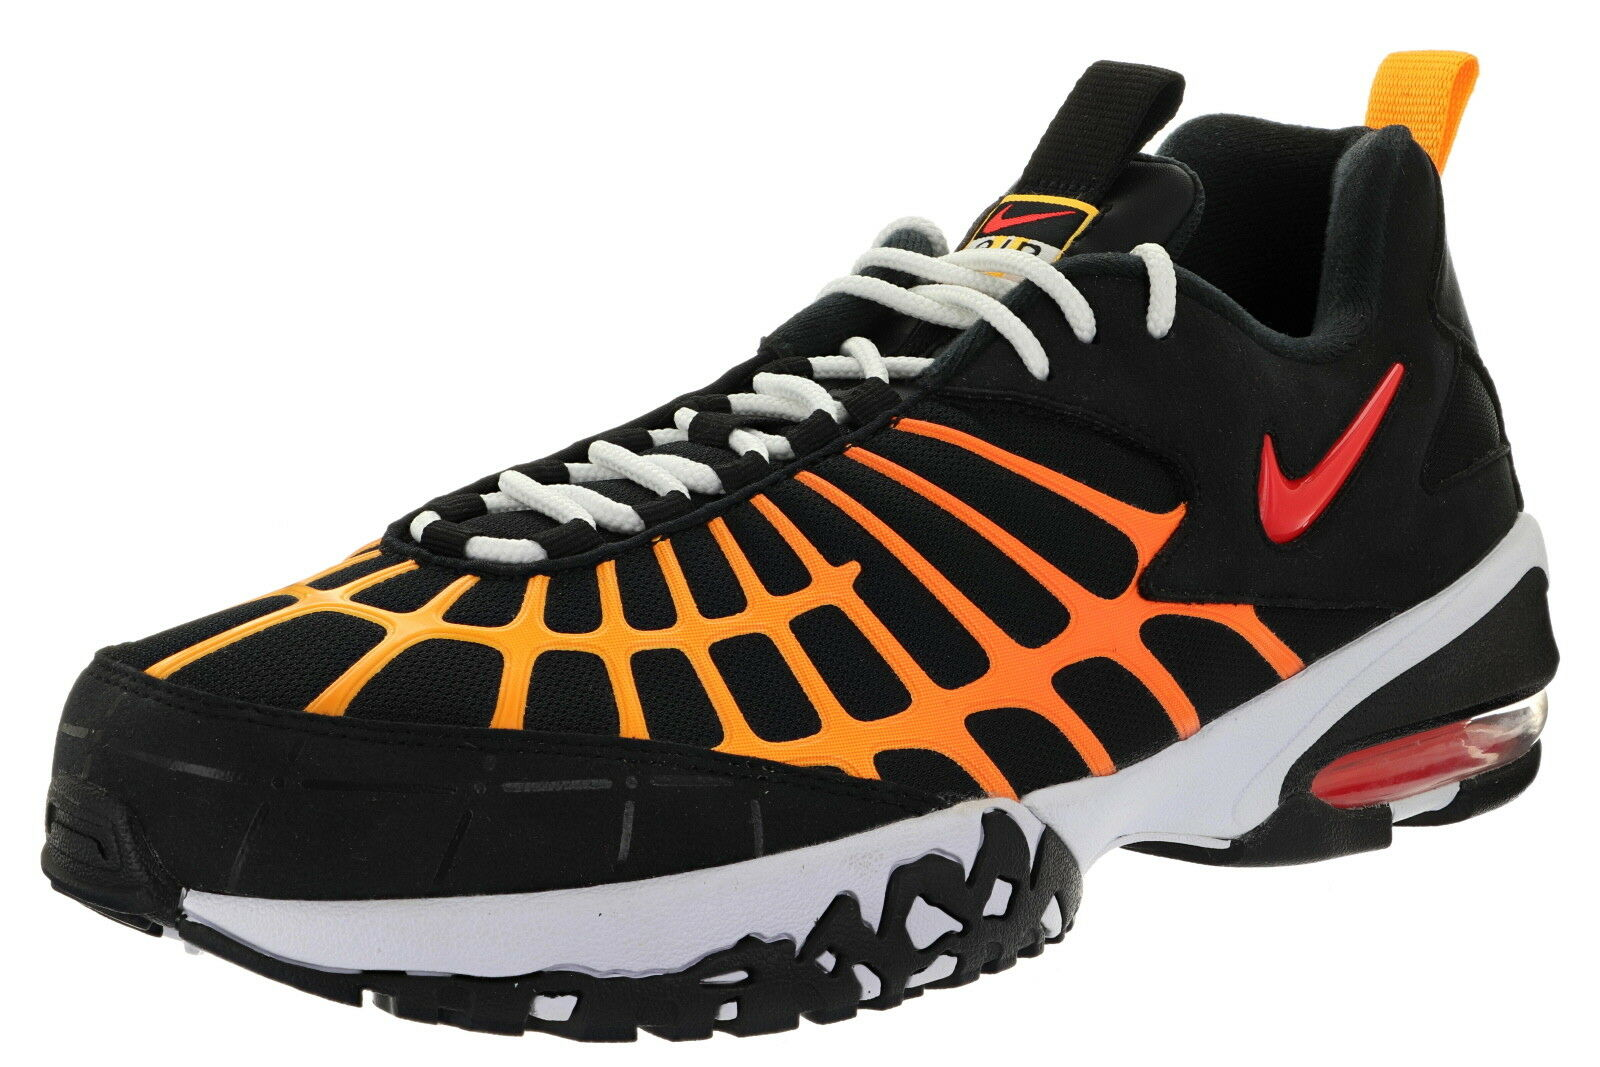 Nike Air Max 120 Mens Size 12 Medium Width Athletic Running Shoes 819857-003